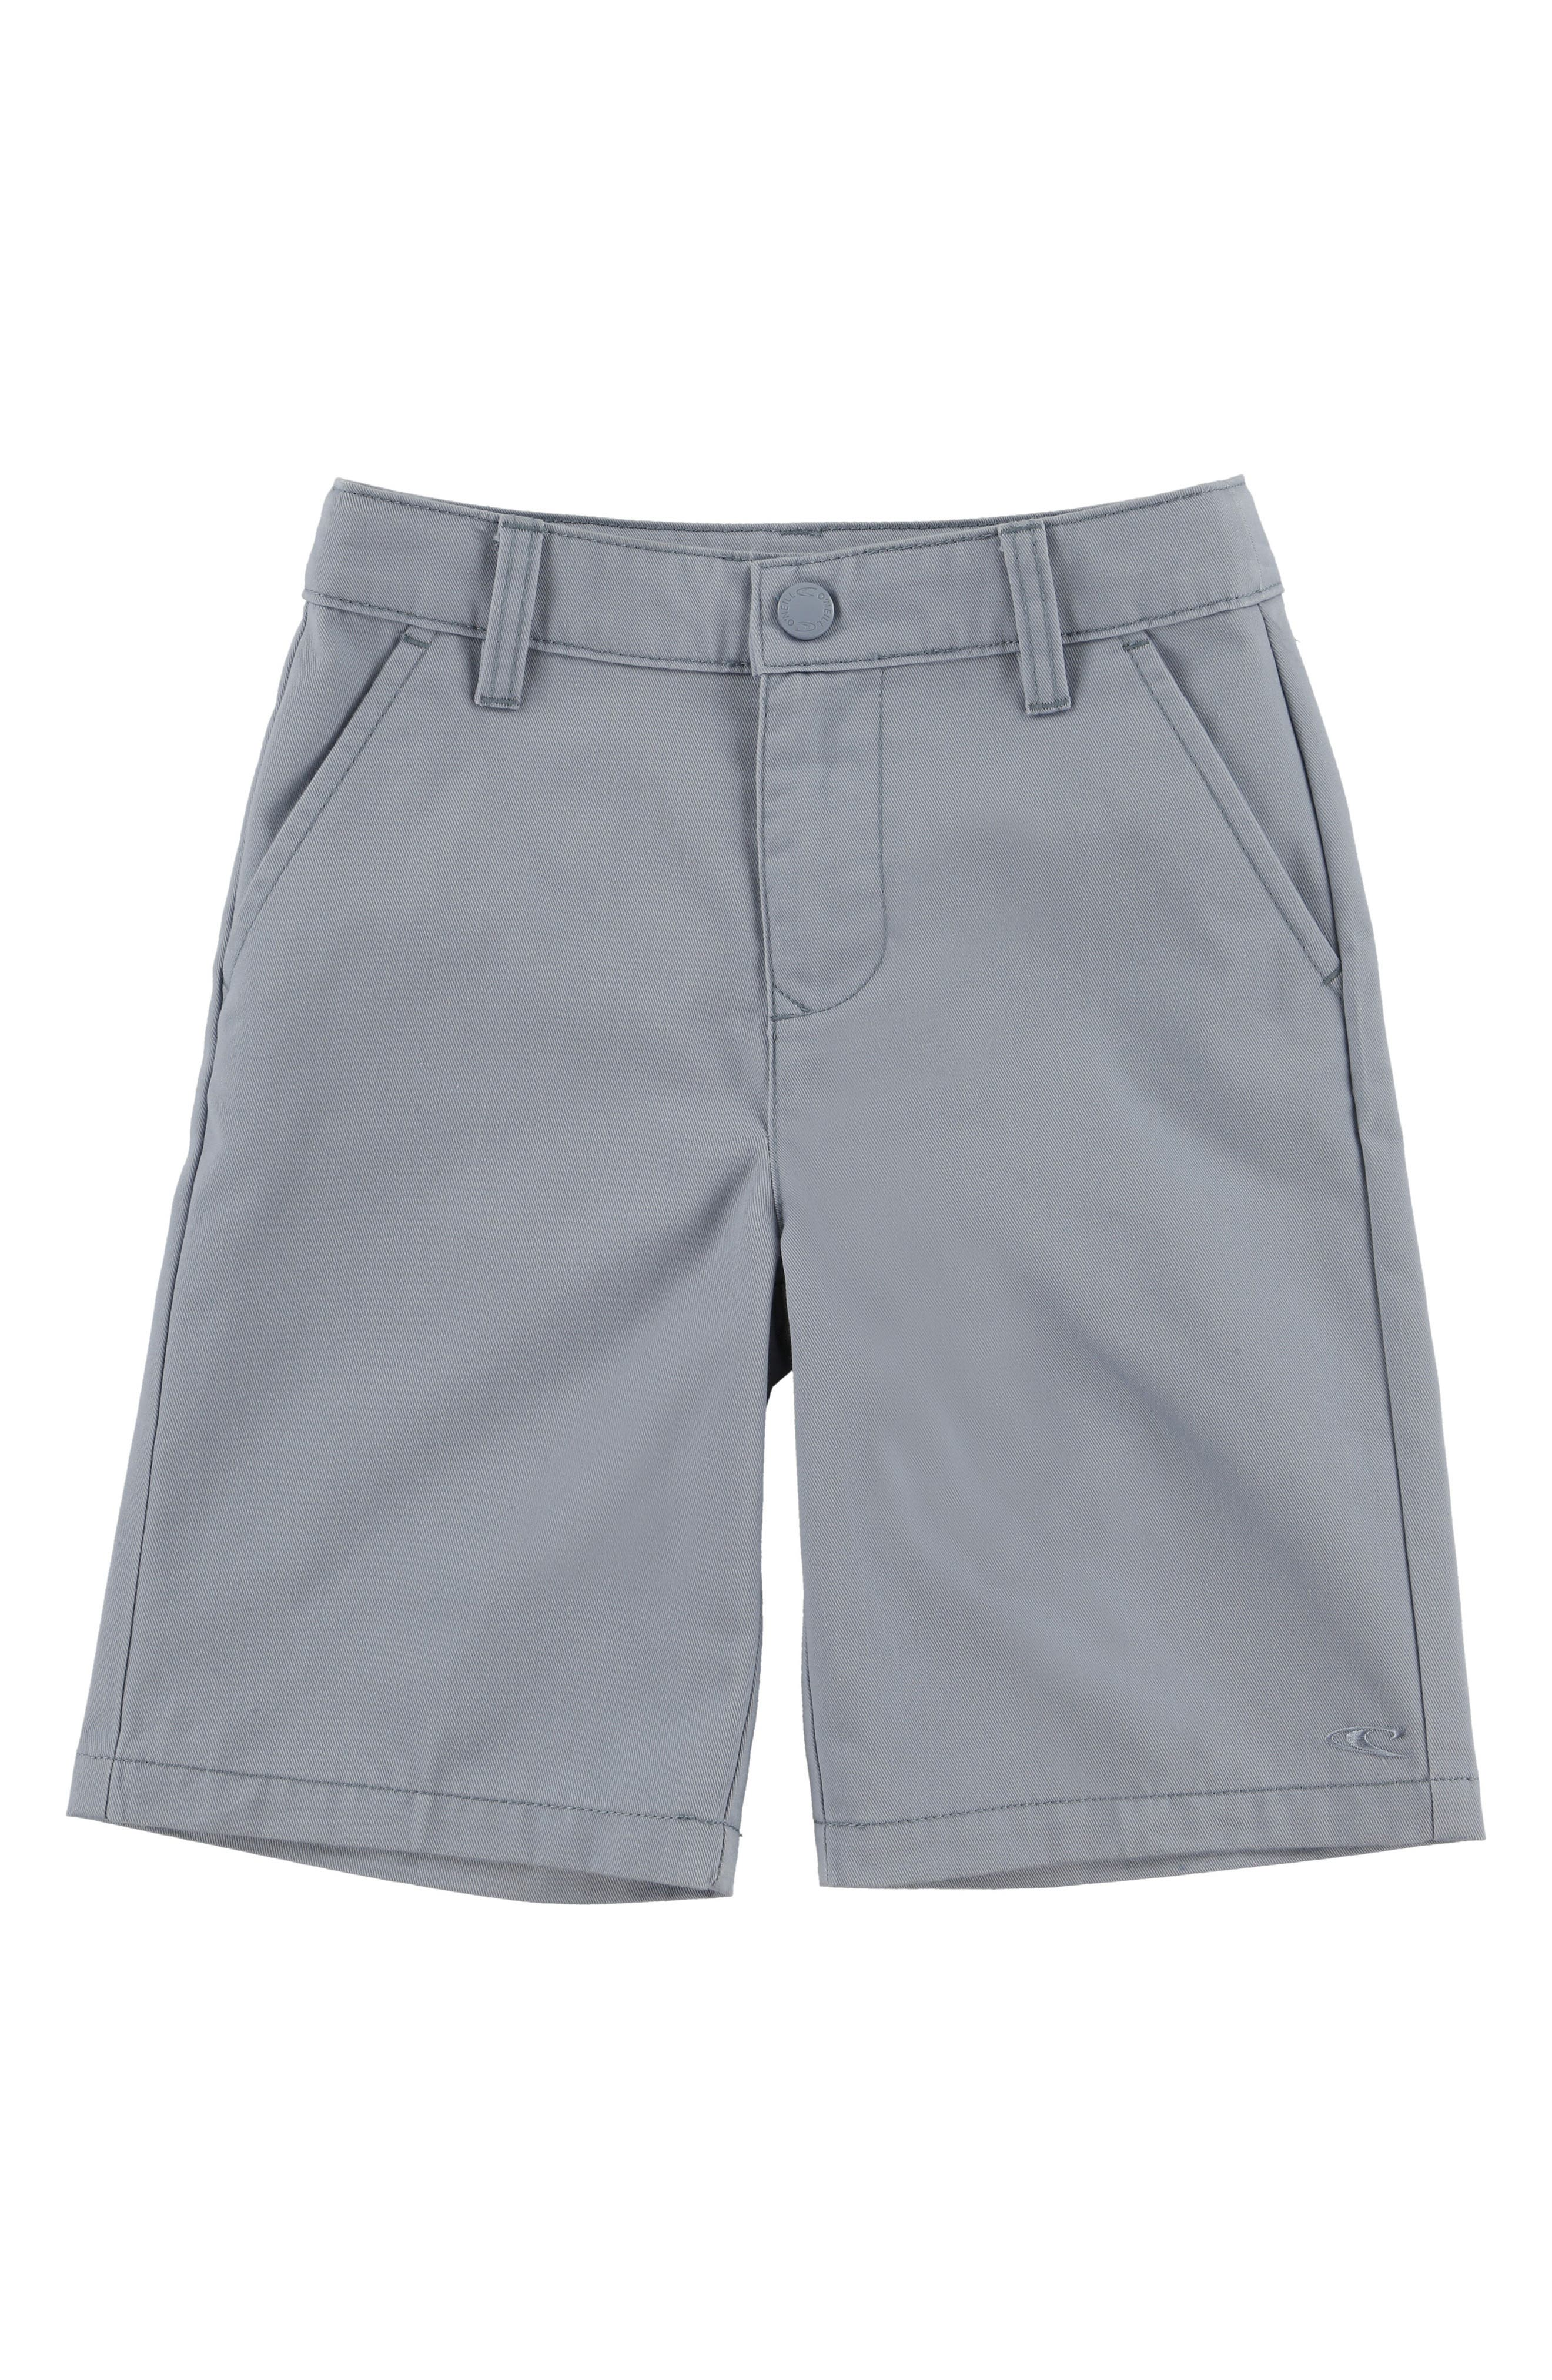 O'NEILL 'Contact' Relaxed Fit Shorts